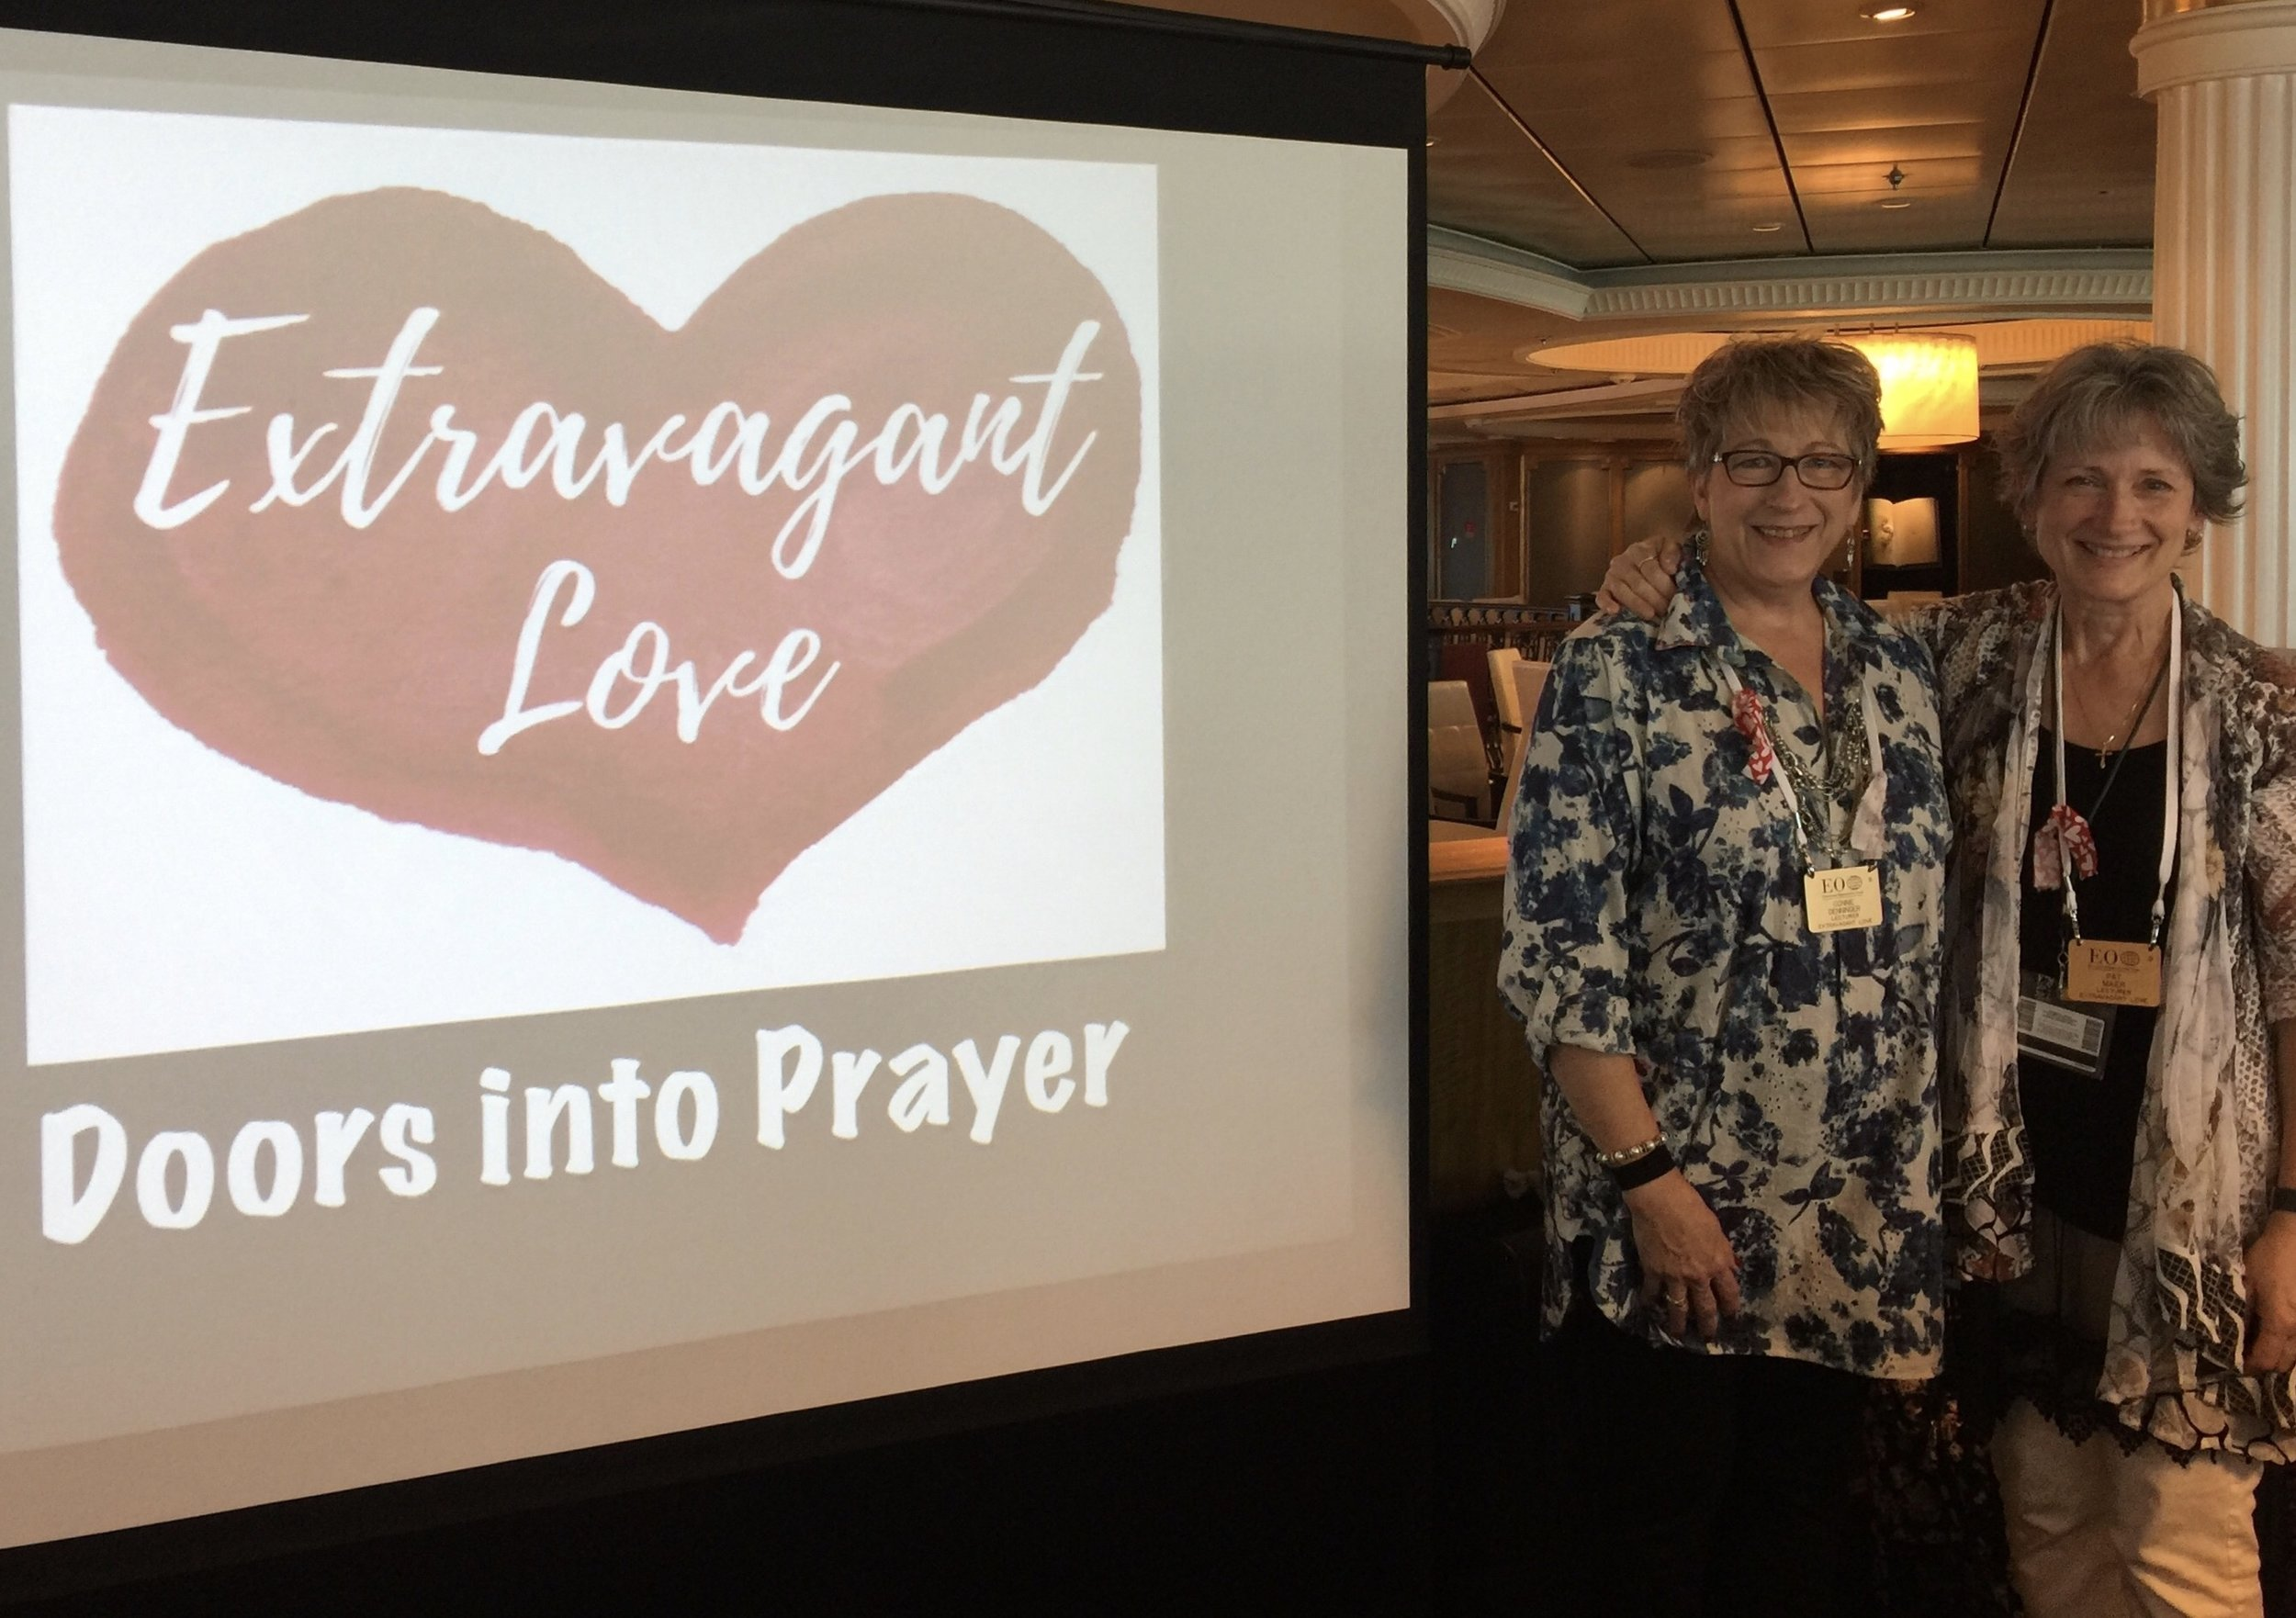 Connie Denninger led us into an introduction of Visual Faith through Doors into Prayer. The Co-Founders of Visual Faith Ministry had a wonderful experience of connecting to so many who are already faithful practitioners and those who were new to the practices.